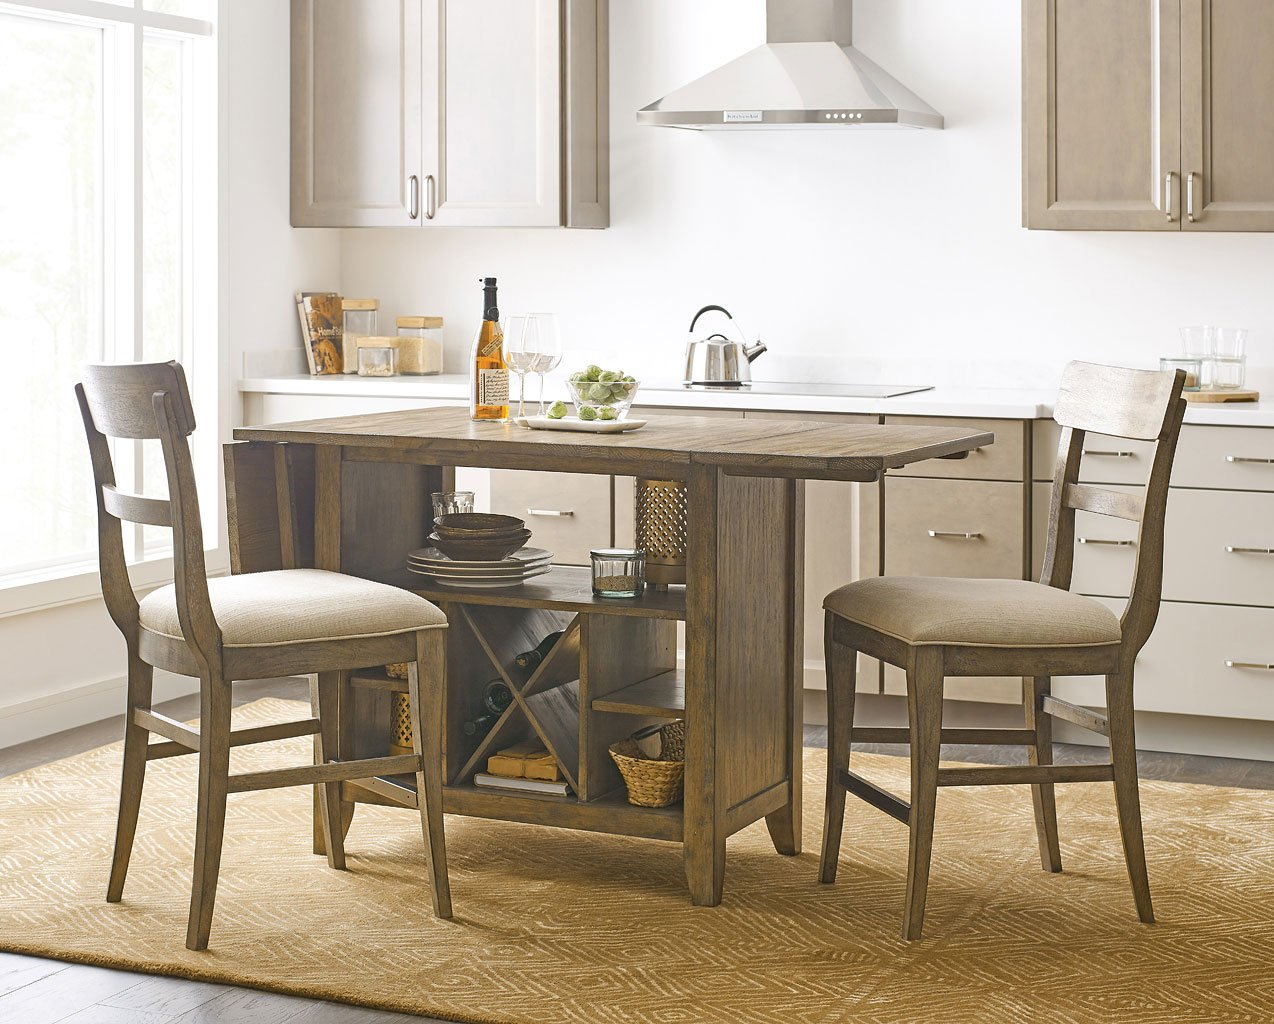 The Nook Kitchen Island Set (Oak)